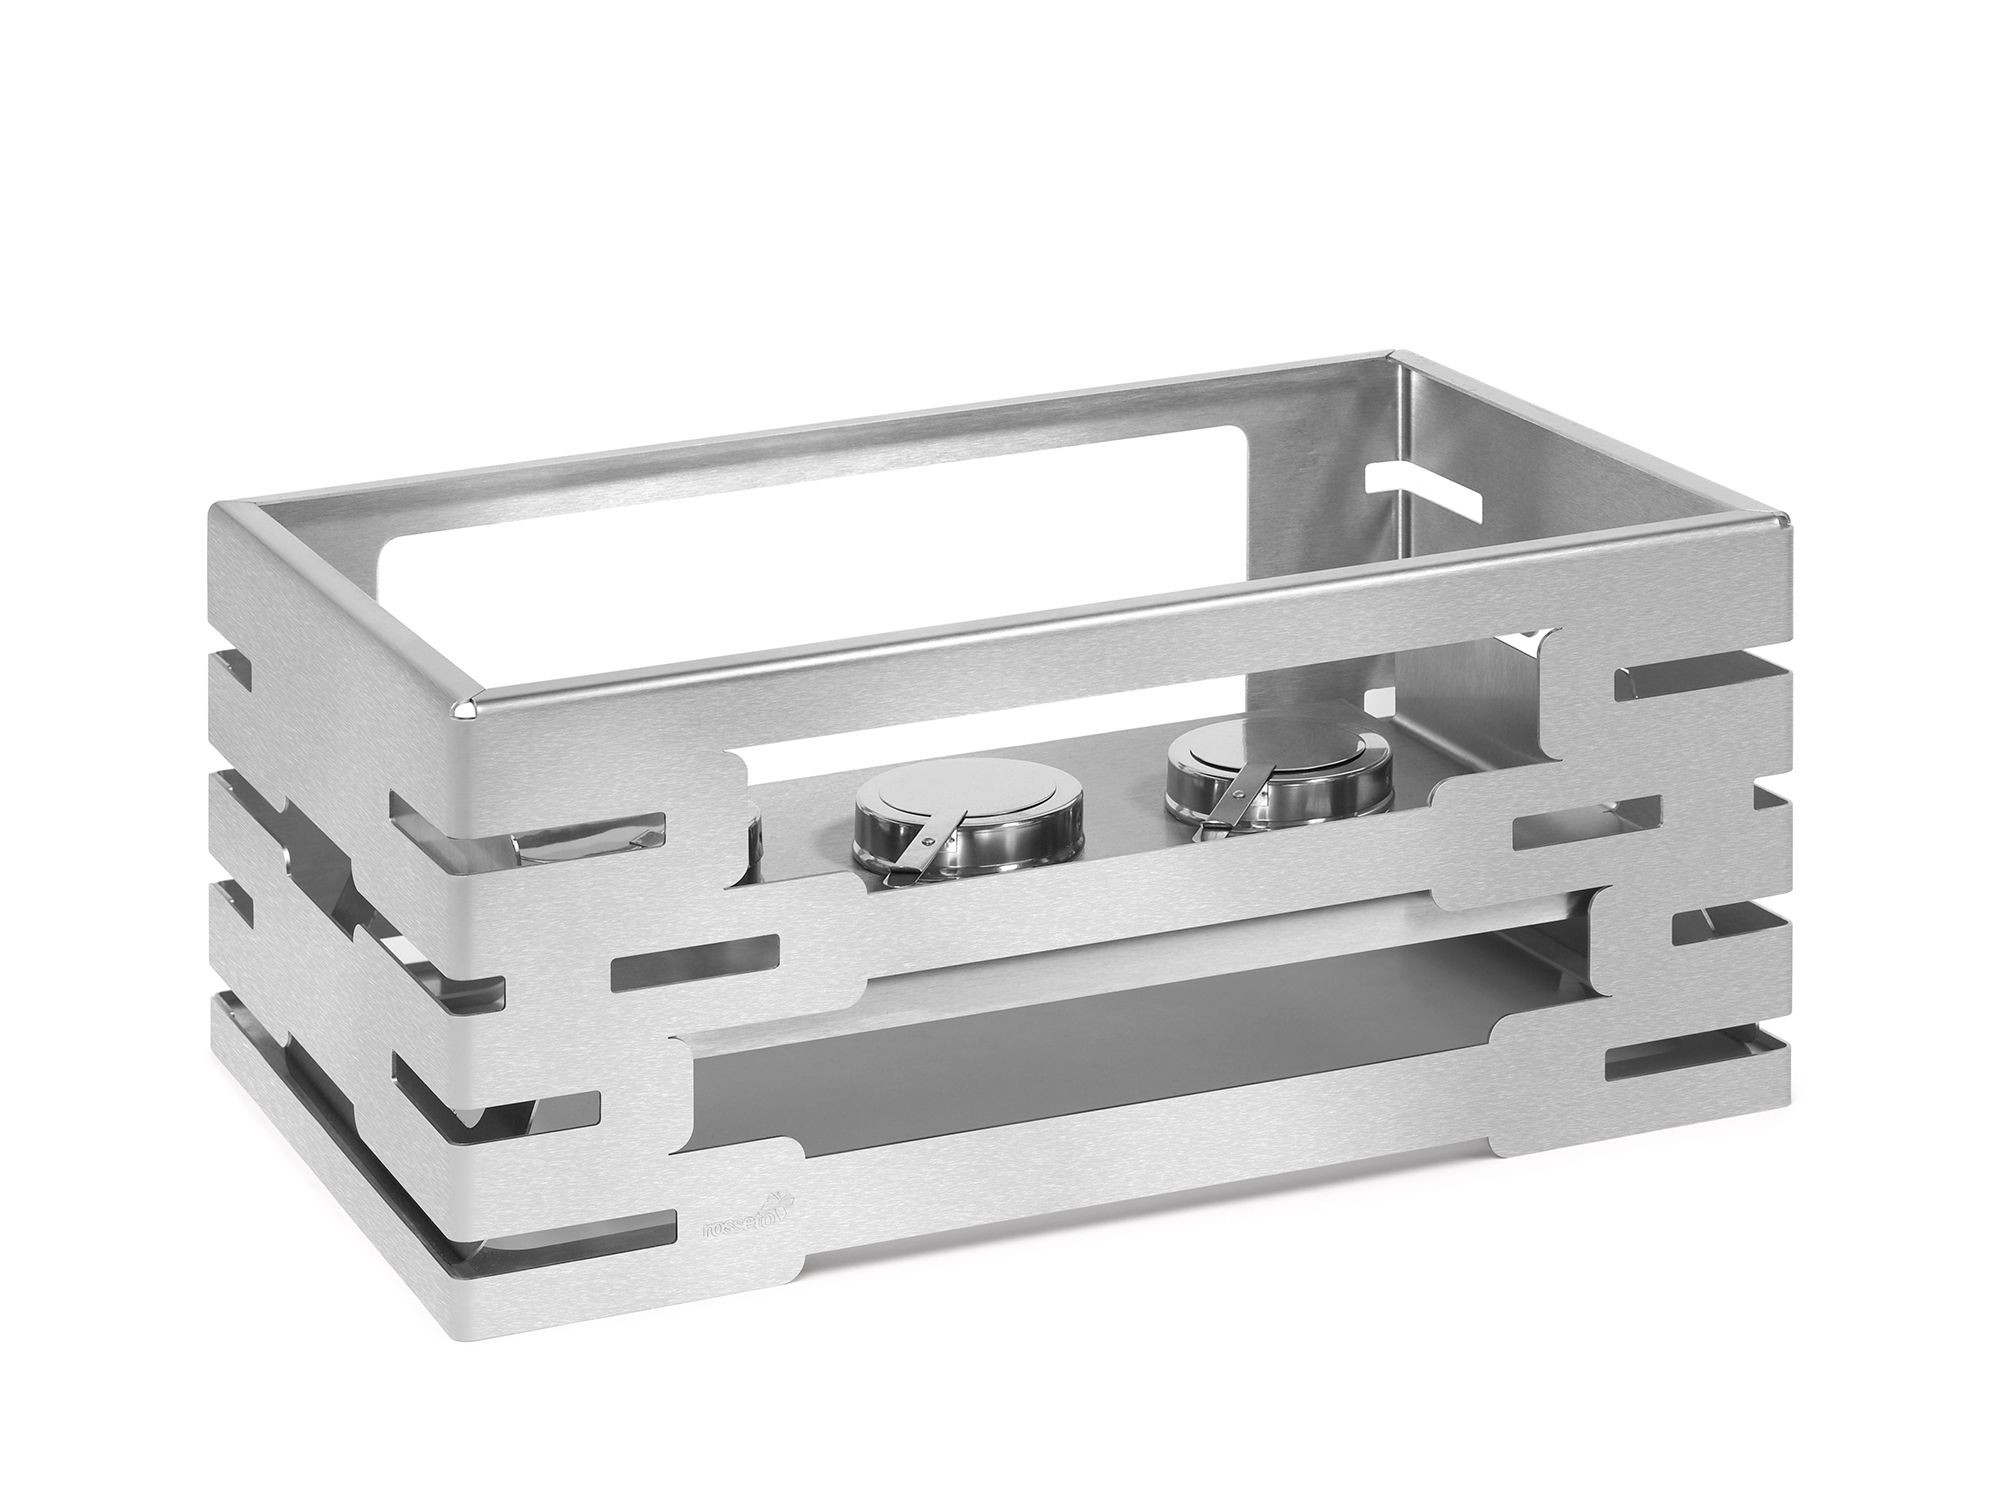 "Rosseto SM191 Multi-Chef™ Rectangular Stainless Steel Warmer with Burner Holder 21.6"" x 13.57"" x 10""H"